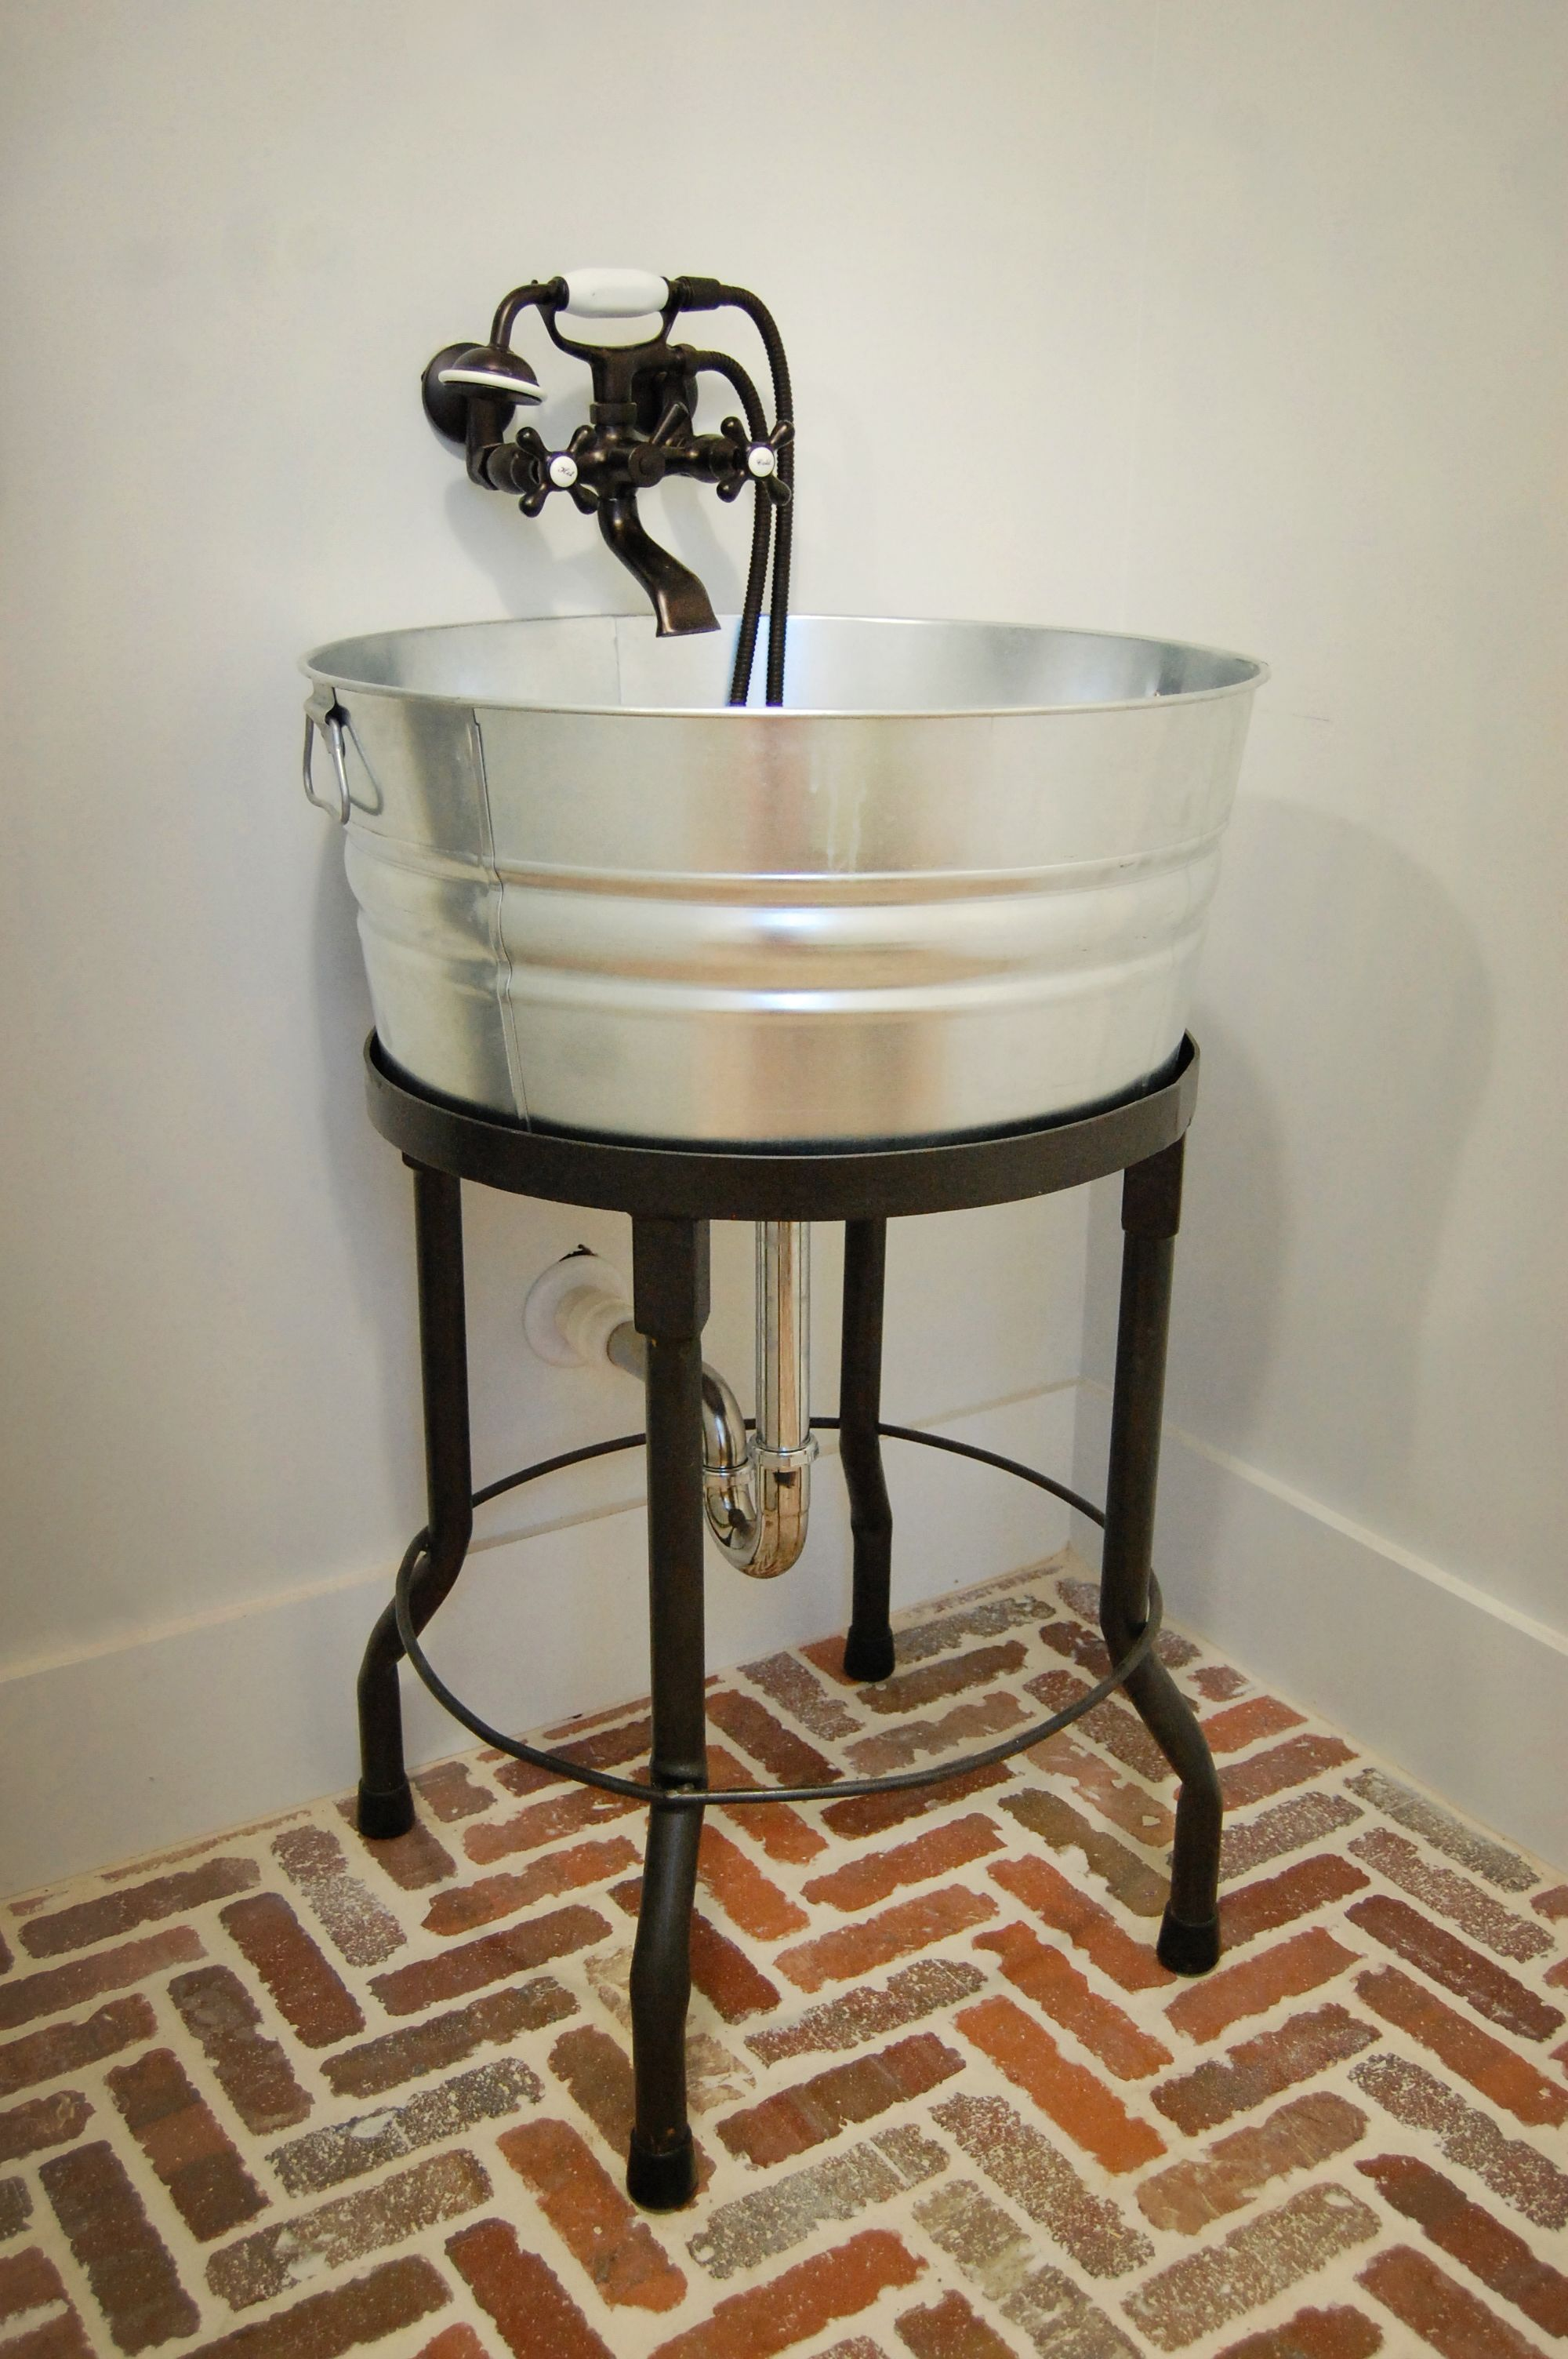 home product today galvanized shipping on free tub with wash garden overstock stand perryman